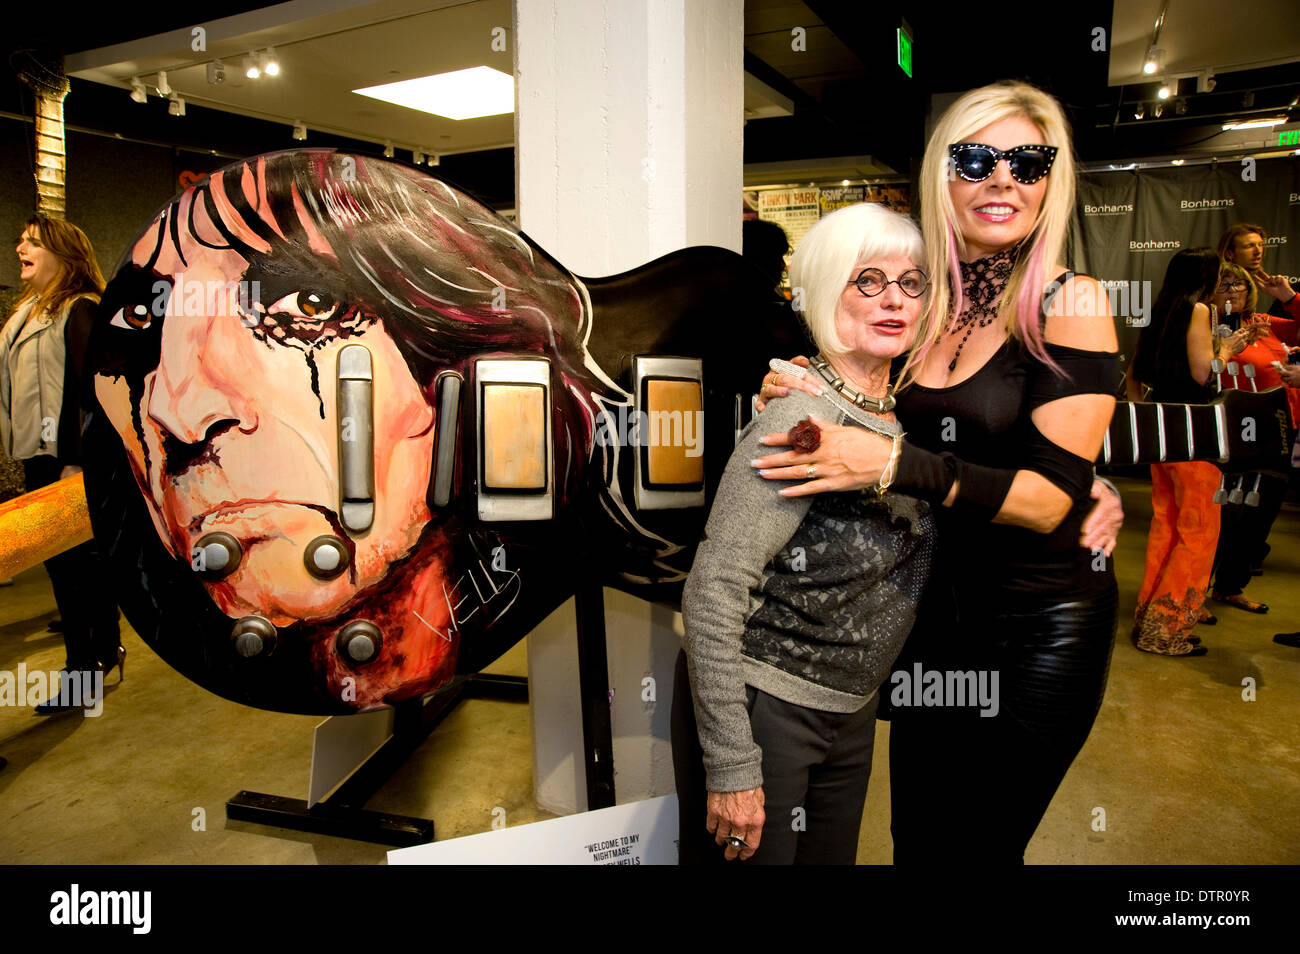 Hollywood, USA. 21st Feb, 2014. Gibson art guitar project contributor Stacey Wells( right) with Art Consultant Merry Norris (left) and  her creation of a guitar inspired by Alice Cooper.The art guitars were displayed on the Sunset Strip for a year and then auctioned off at Bonham's with the proceeds going to charity. Credit:  Robert Landau/Alamy Live News - Stock Image